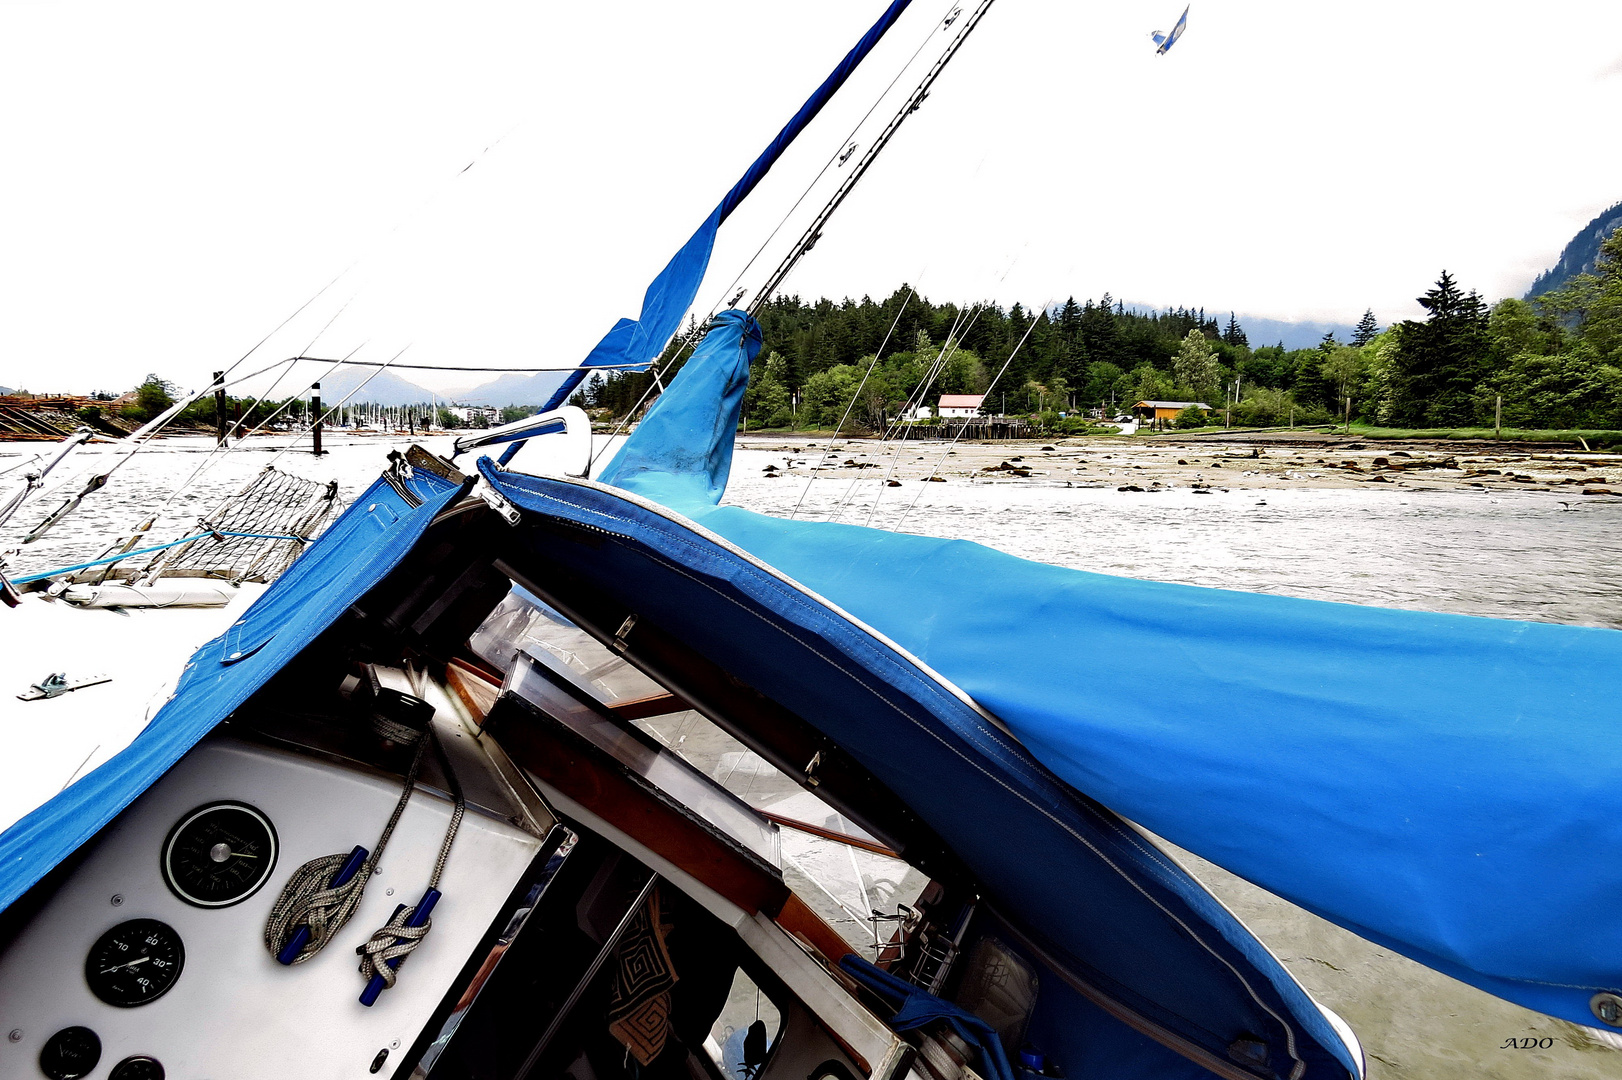 Our Sailboat - and the Sandbank